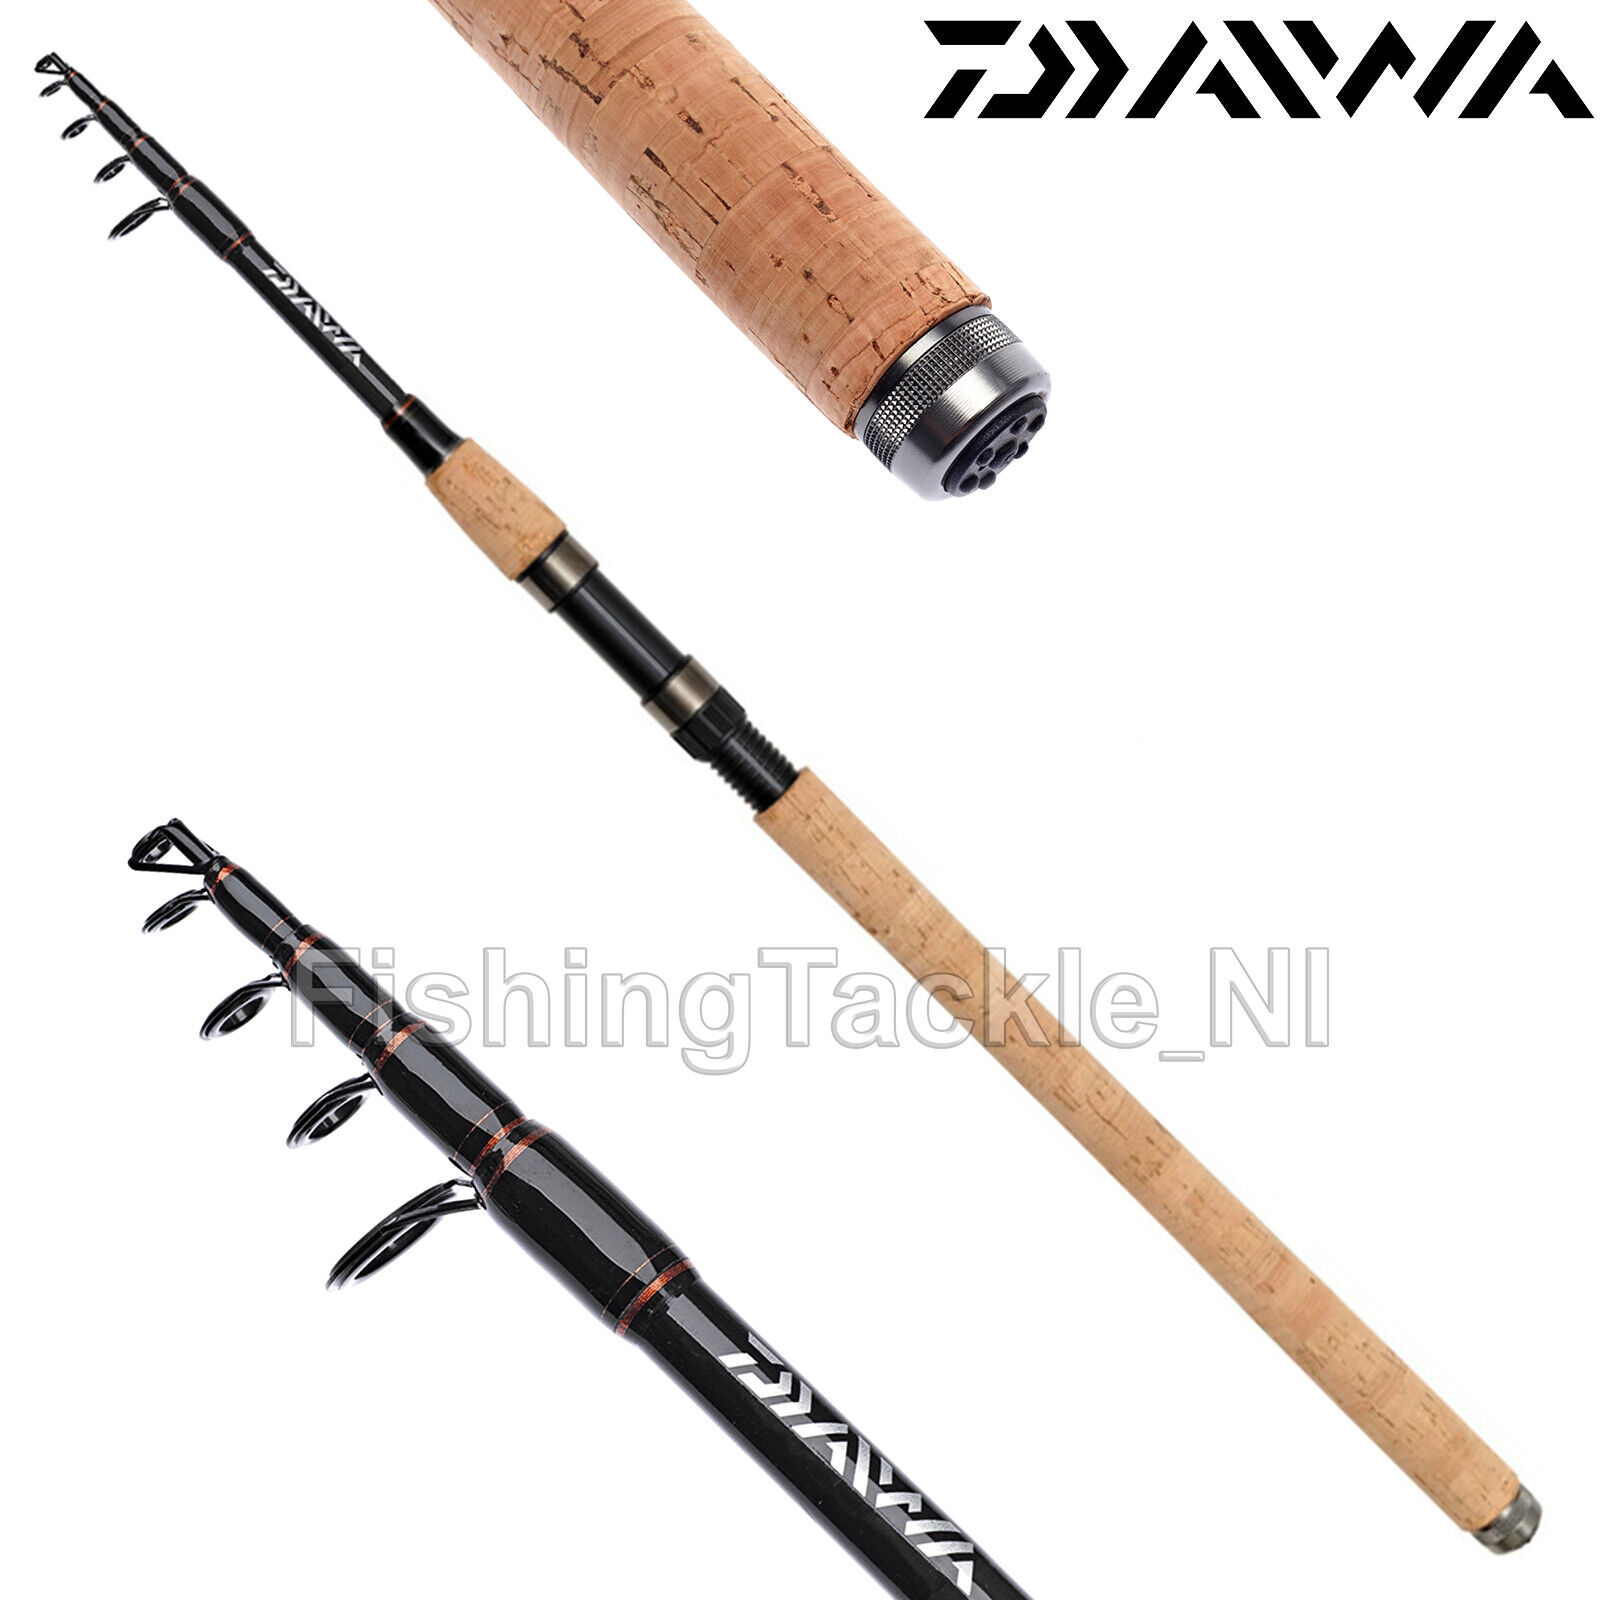 Details about Daiwa Sweepfire Telespin Cork Handle Telescopic Fishing Rod 8ft, 9ft, 10ft